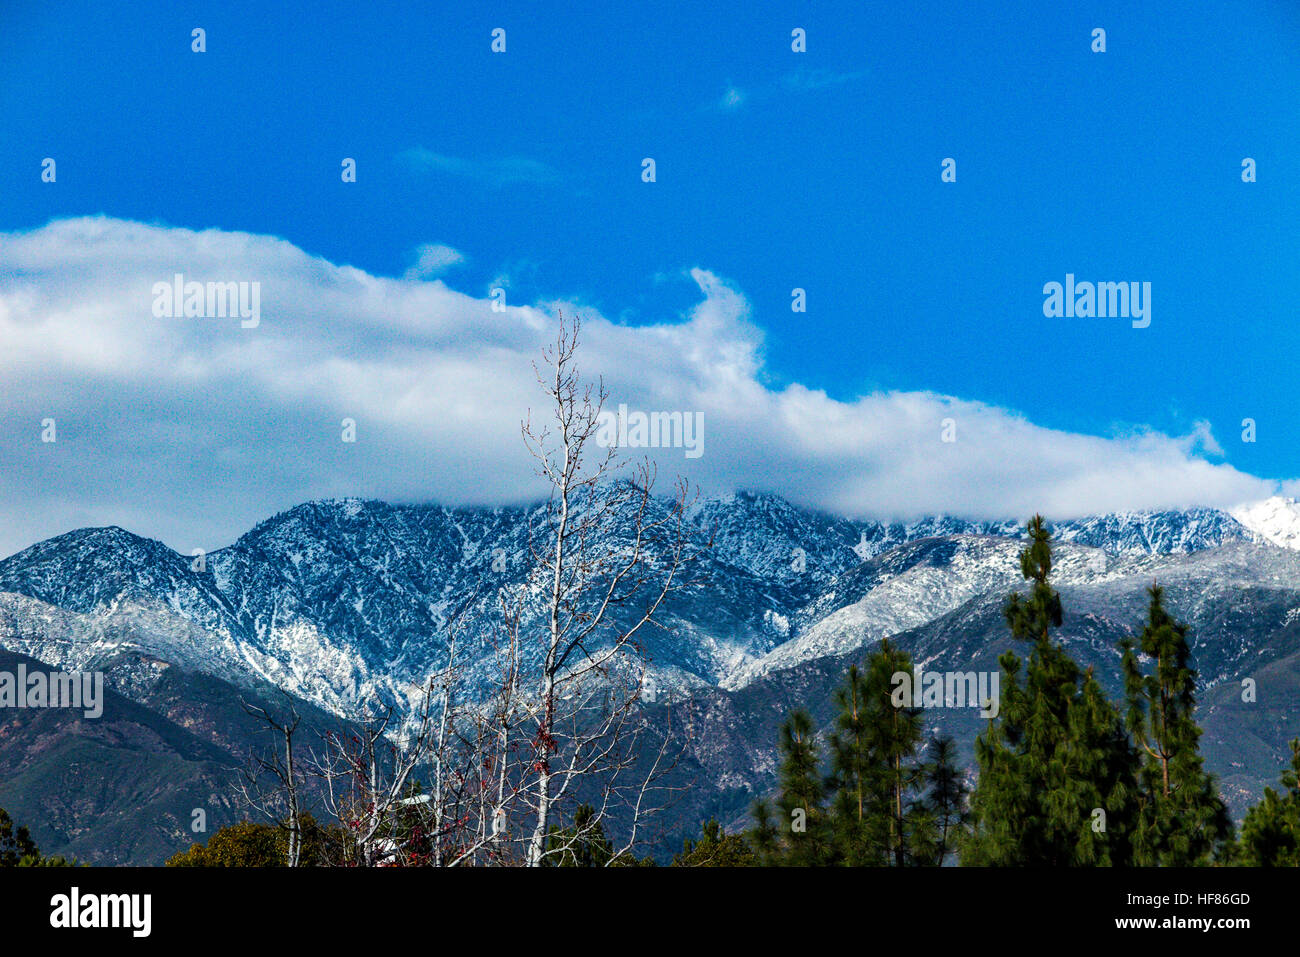 Mount Baldy in the San Gabriel mountains of Southern California after a winters snow storm - Stock Image